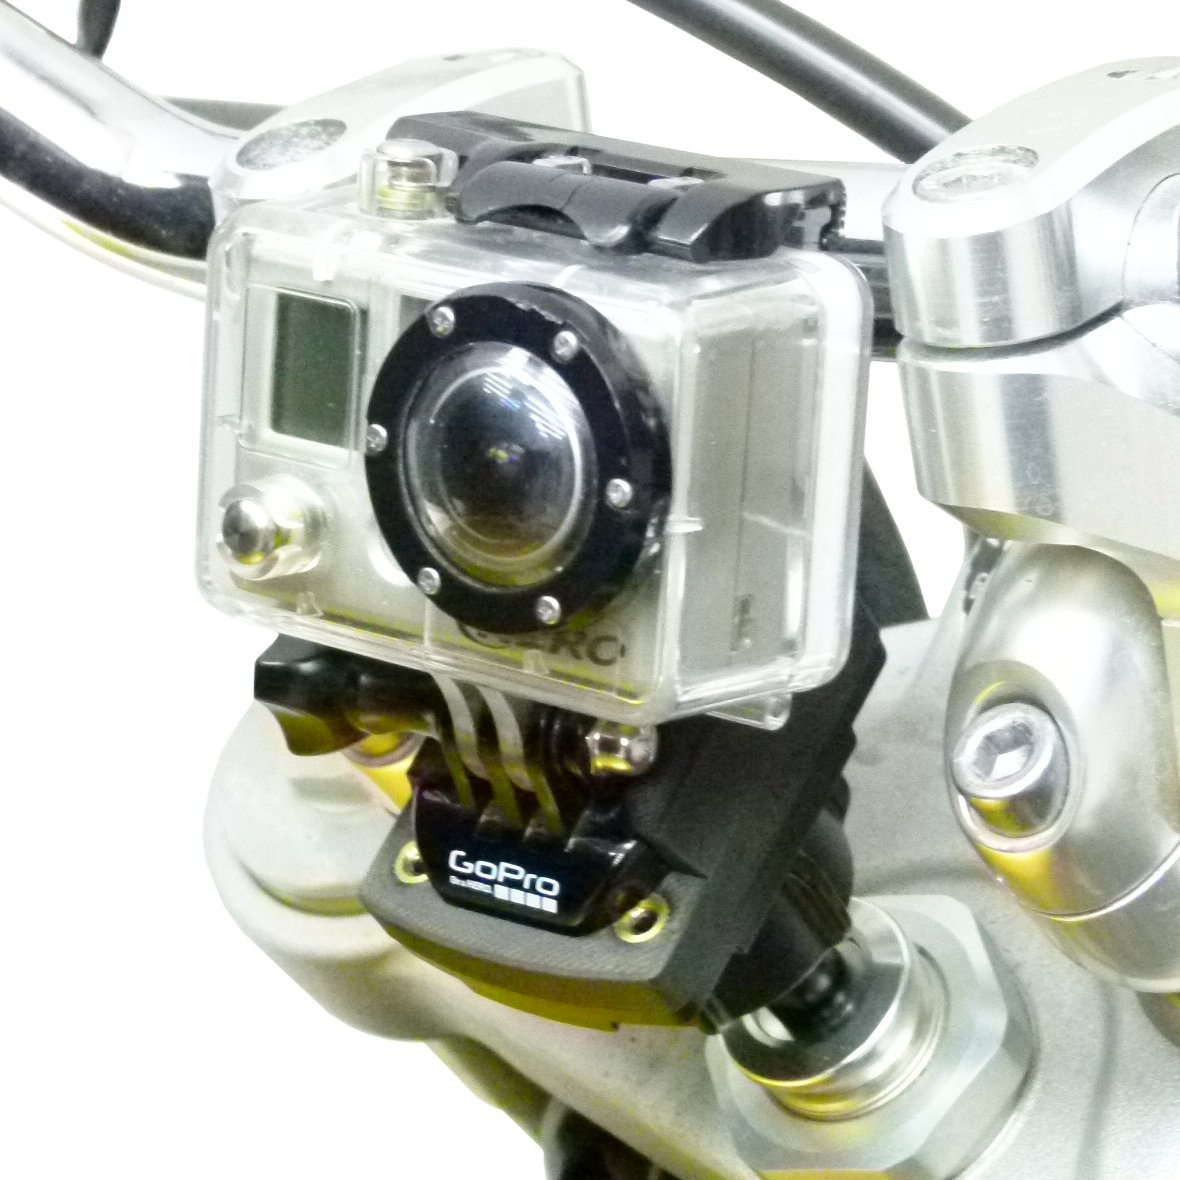 15-17mm Motorcycle Fork Stem Mount & GoPro Camera Plate adapter (sku 50190) - BuyBits Ltd UK